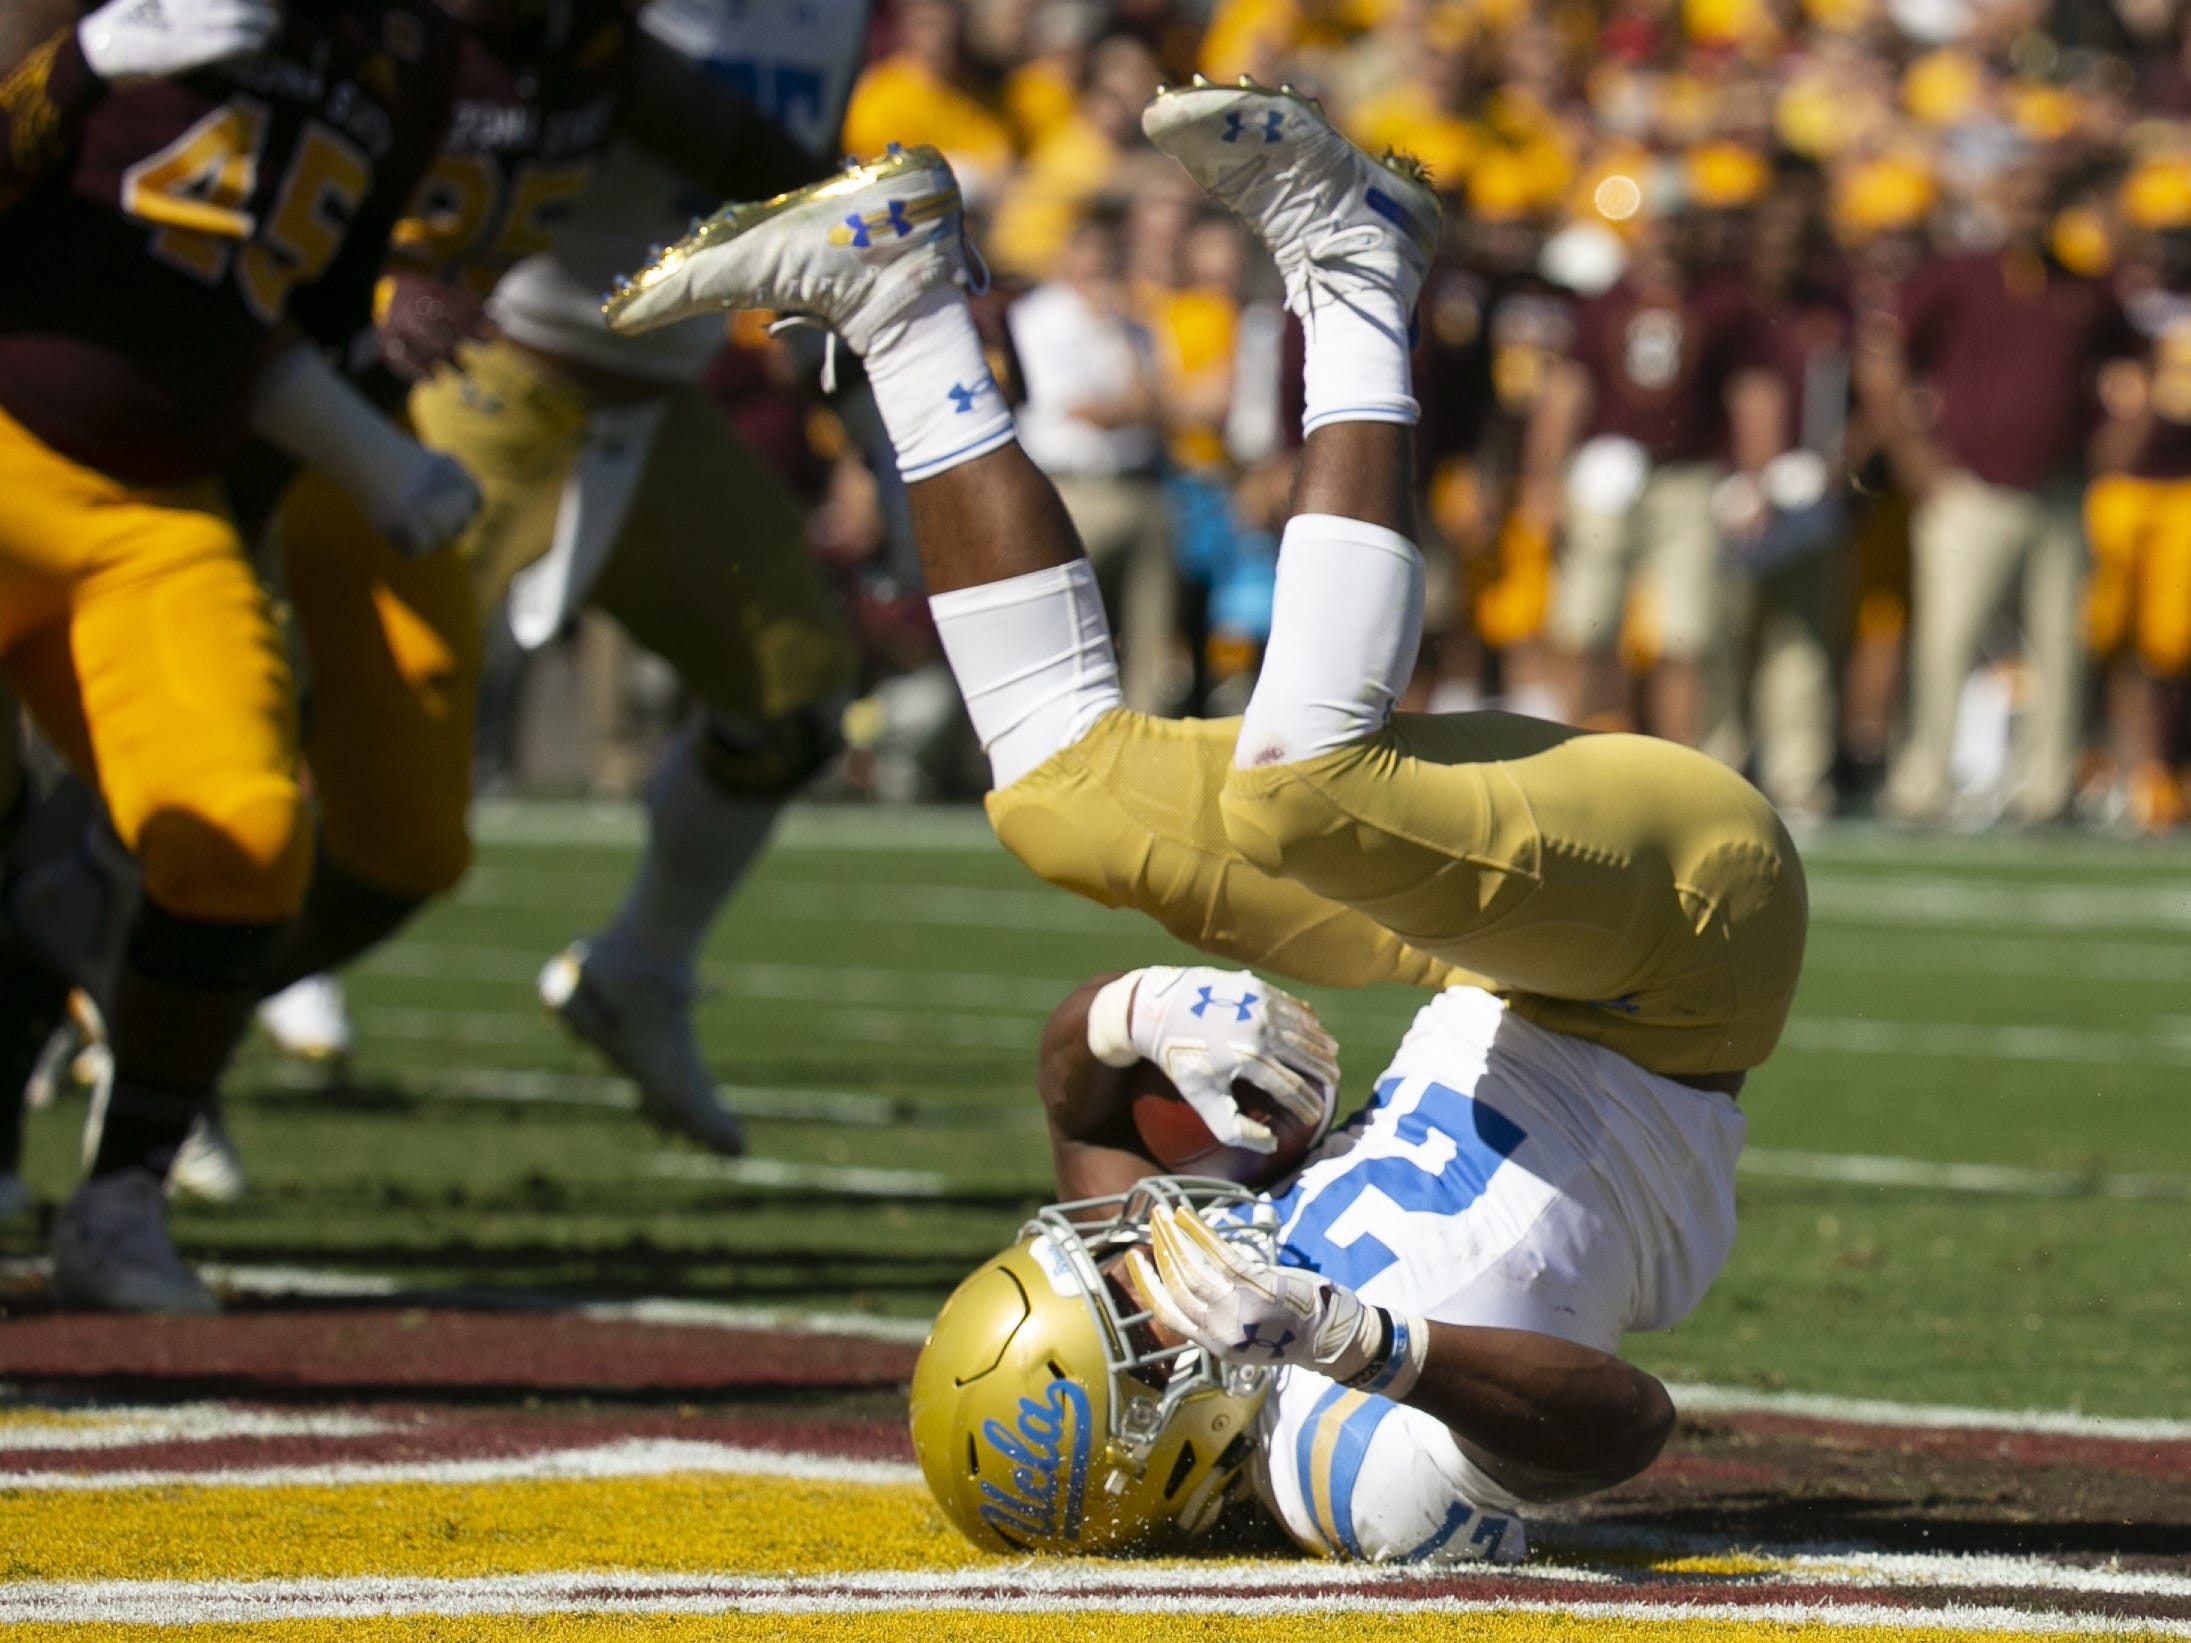 UCLA running back Joshua Kelley scores a touchdown  during the first quarter of the PAC-12 college football game against ASU at Sun Devil Stadium in Tempe on Saturday, November 10, 2018.